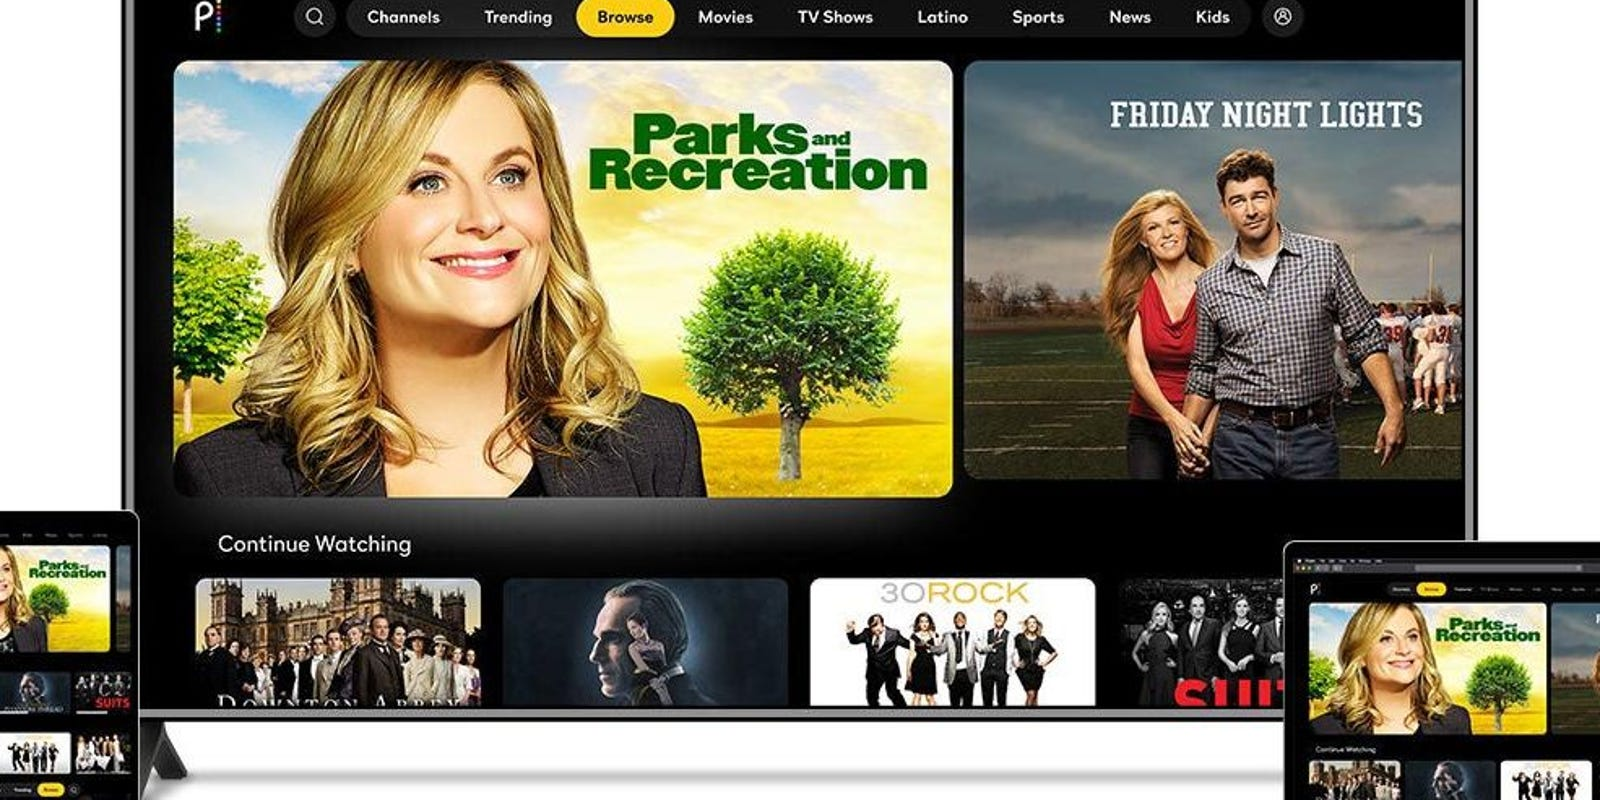 NBC's Peacock streaming app finally available on Roku, 3 months late